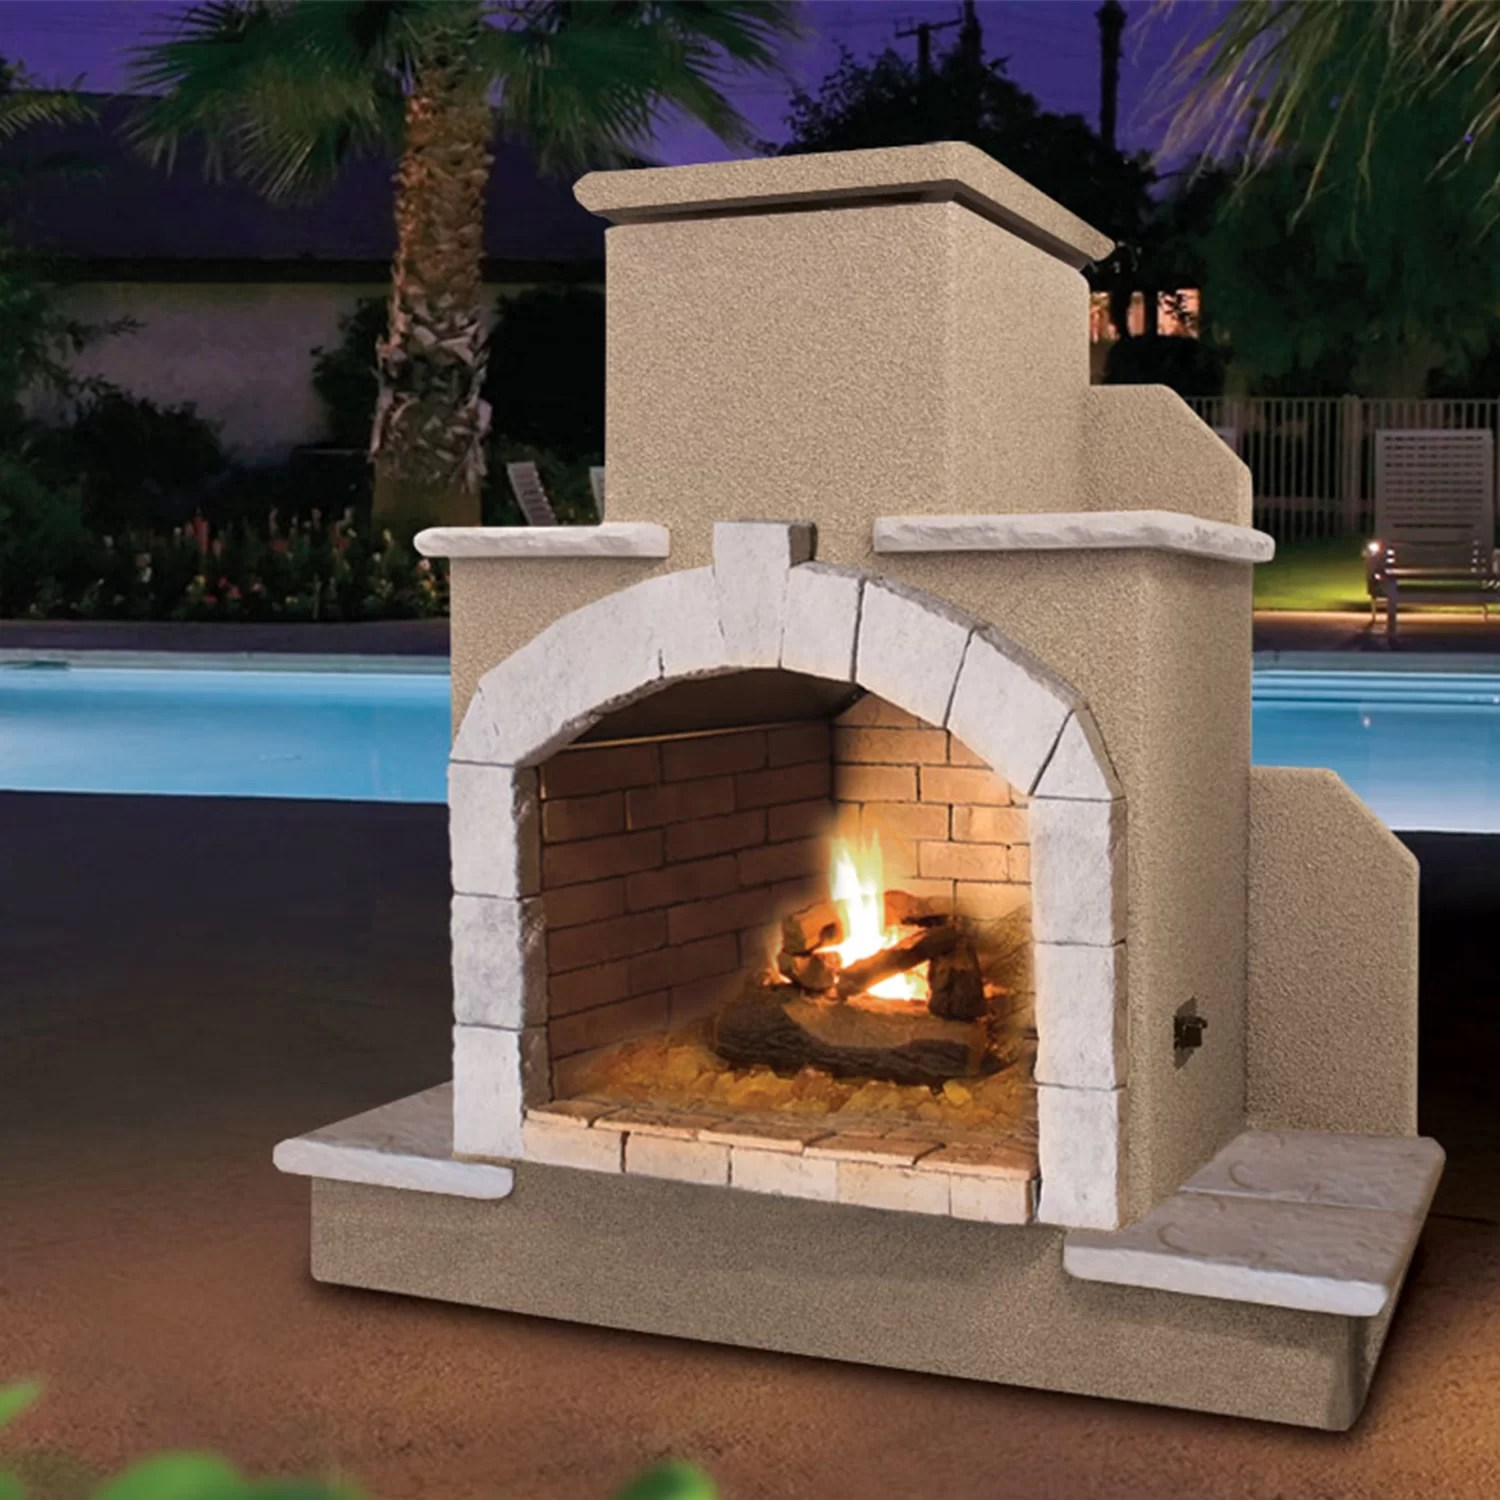 Calflame Propane Gas Outdoor Fireplace